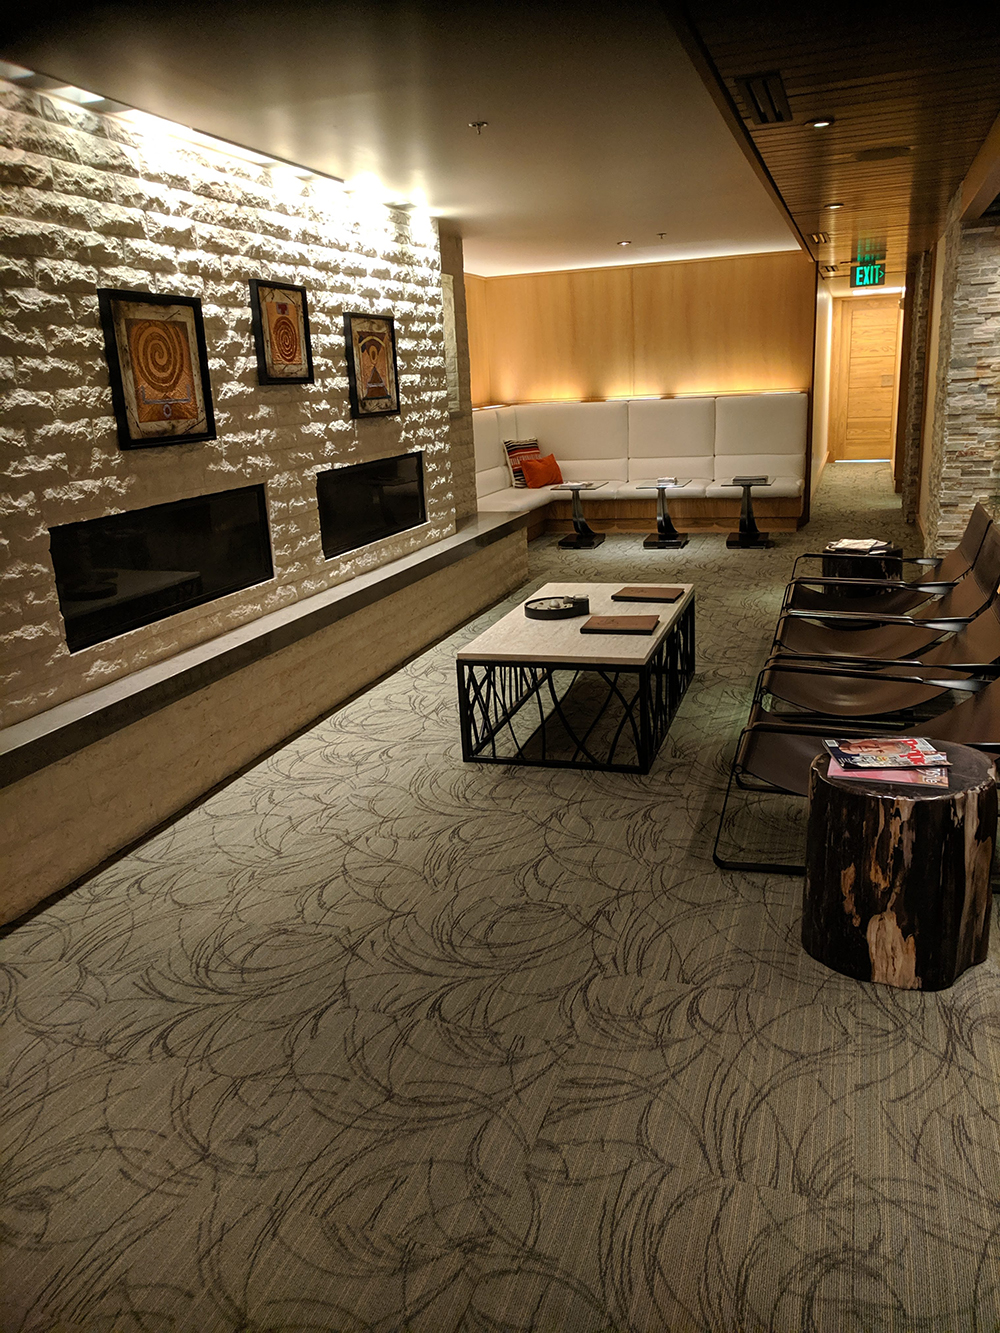 The spa's fire lounge sans fire on a warm summer day.